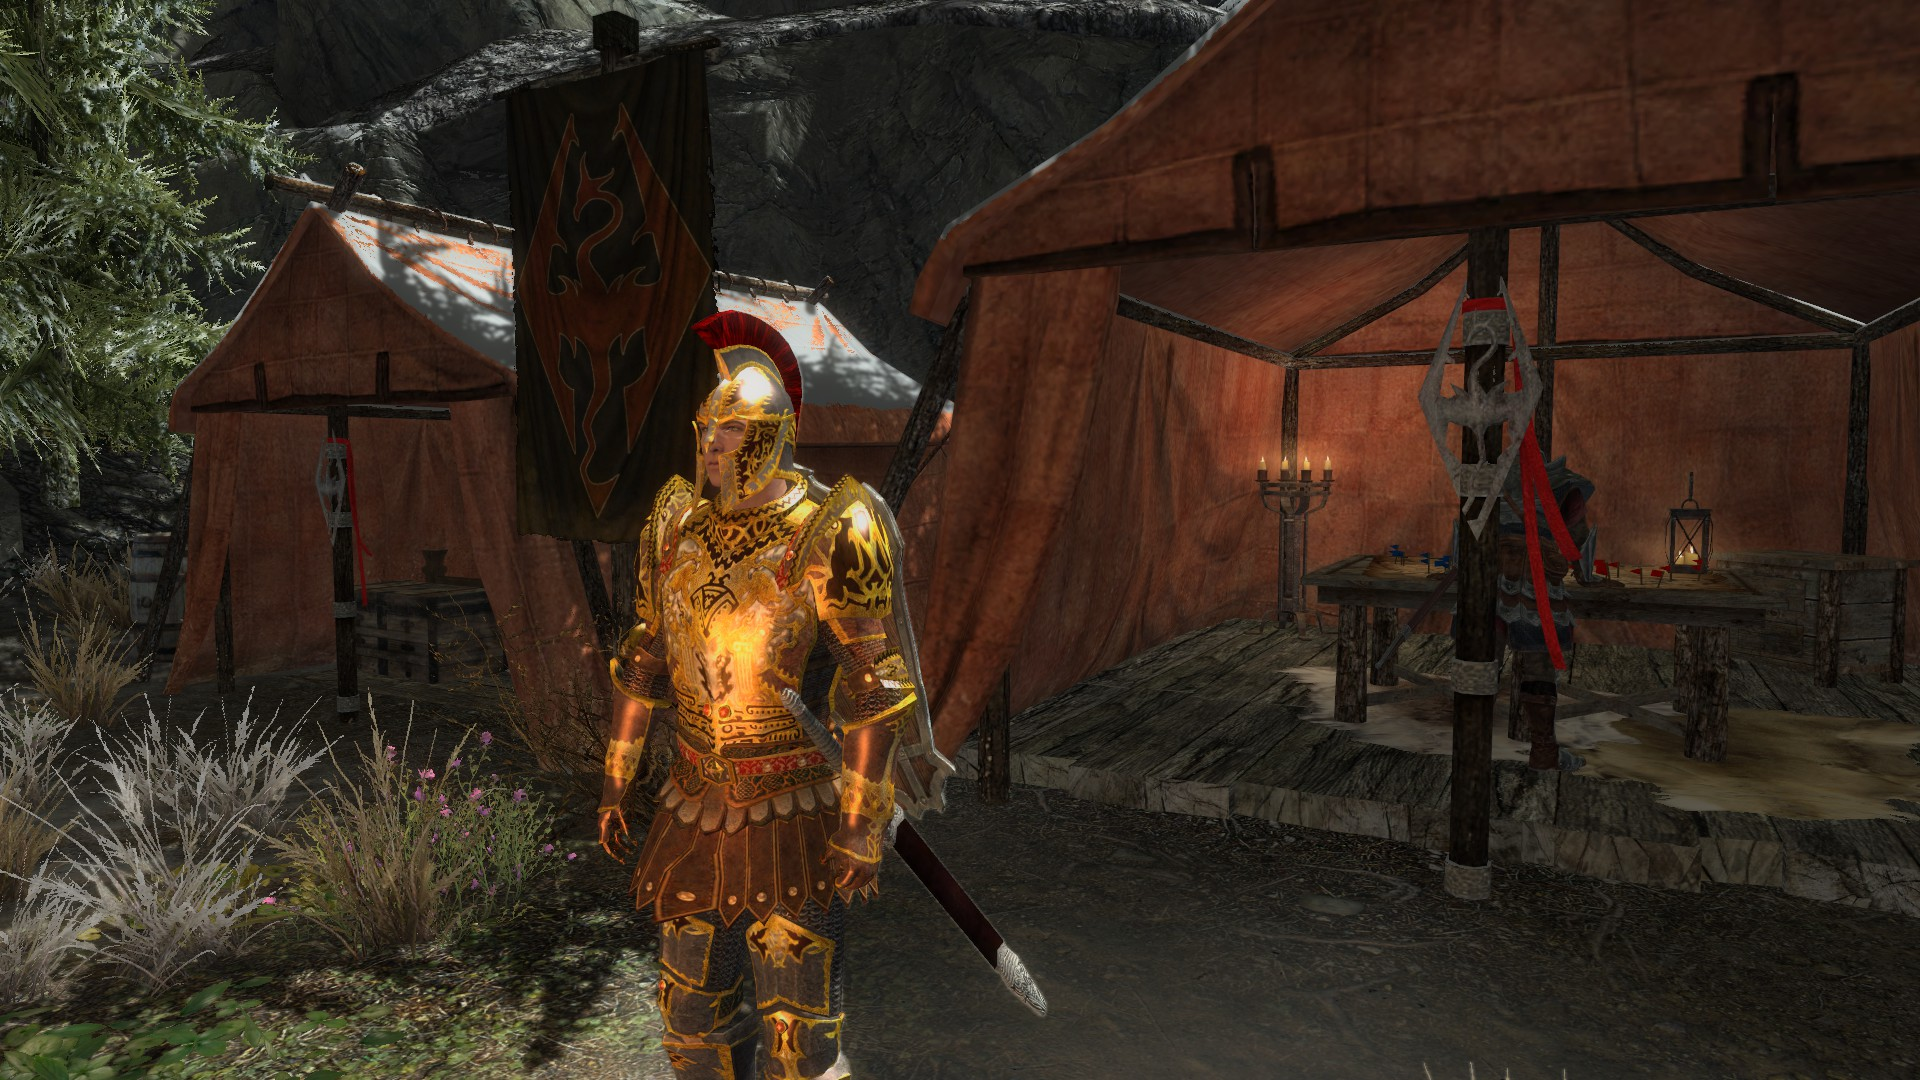 Imperial Dragon Armor Image Weapons And Armors From Cyrodiil Mod For Elder Scrolls V Skyrim Mod Db How to get a dragon bow, battleaxe skyrim remastered best daedric weapons & armor & enchanted at level one! imperial dragon armor image weapons